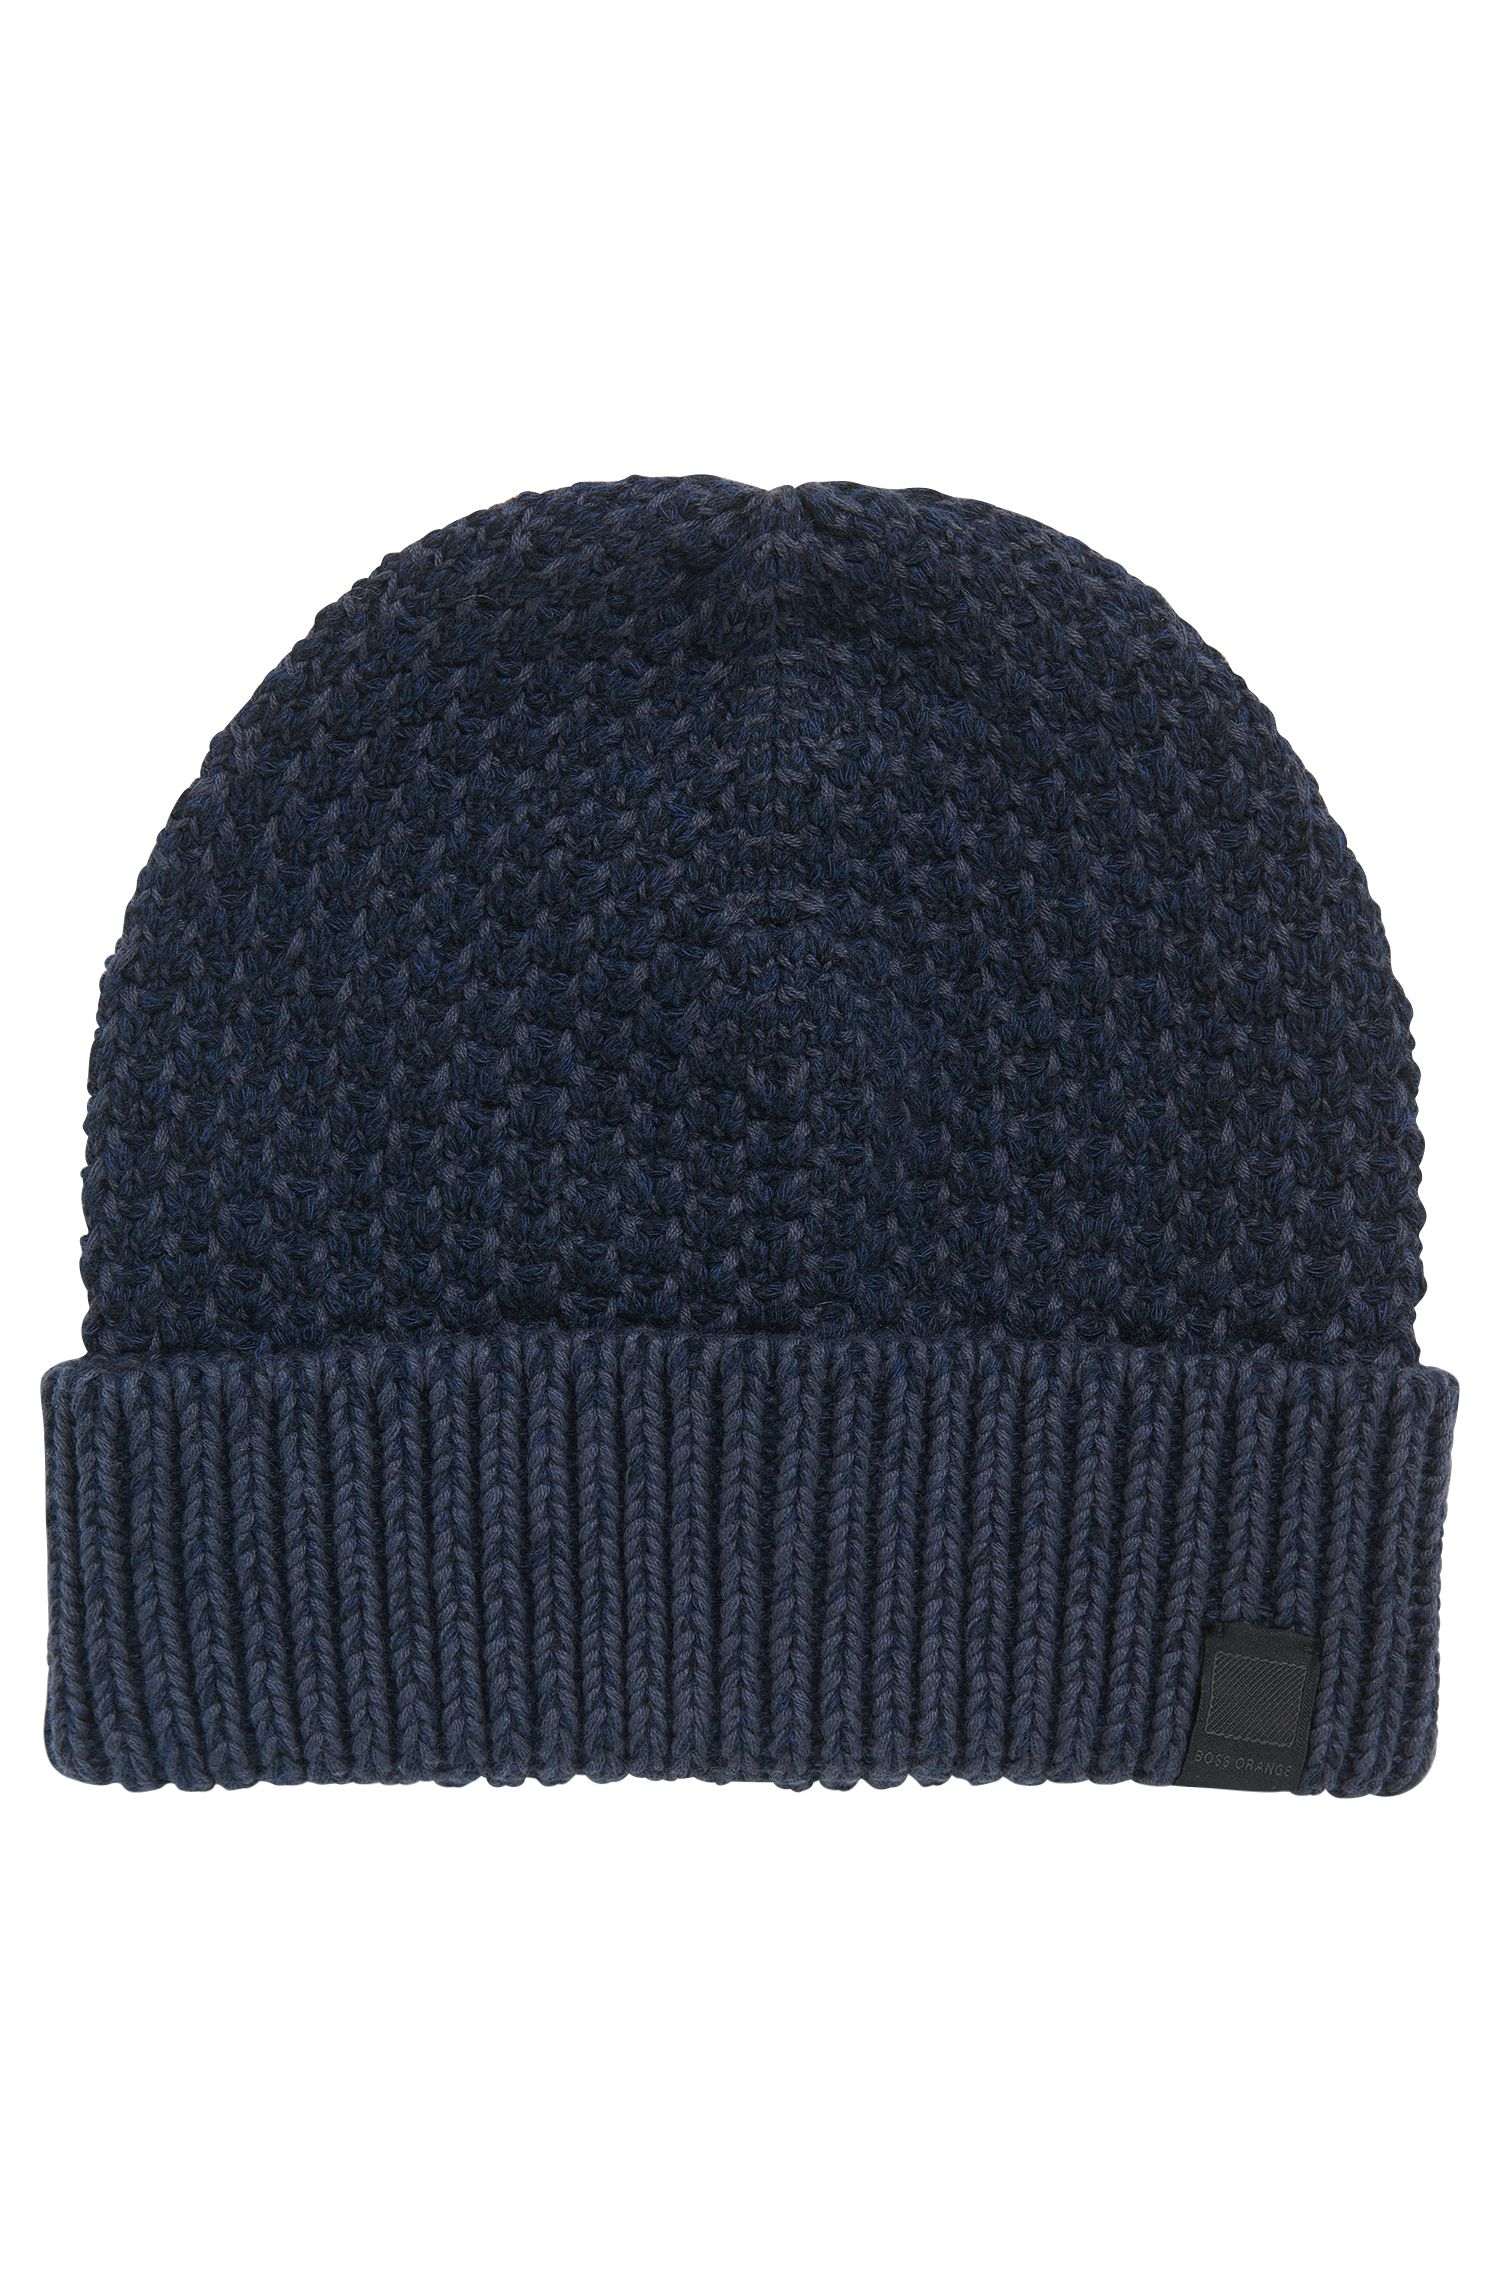 Cotton beanie with two-tone structure